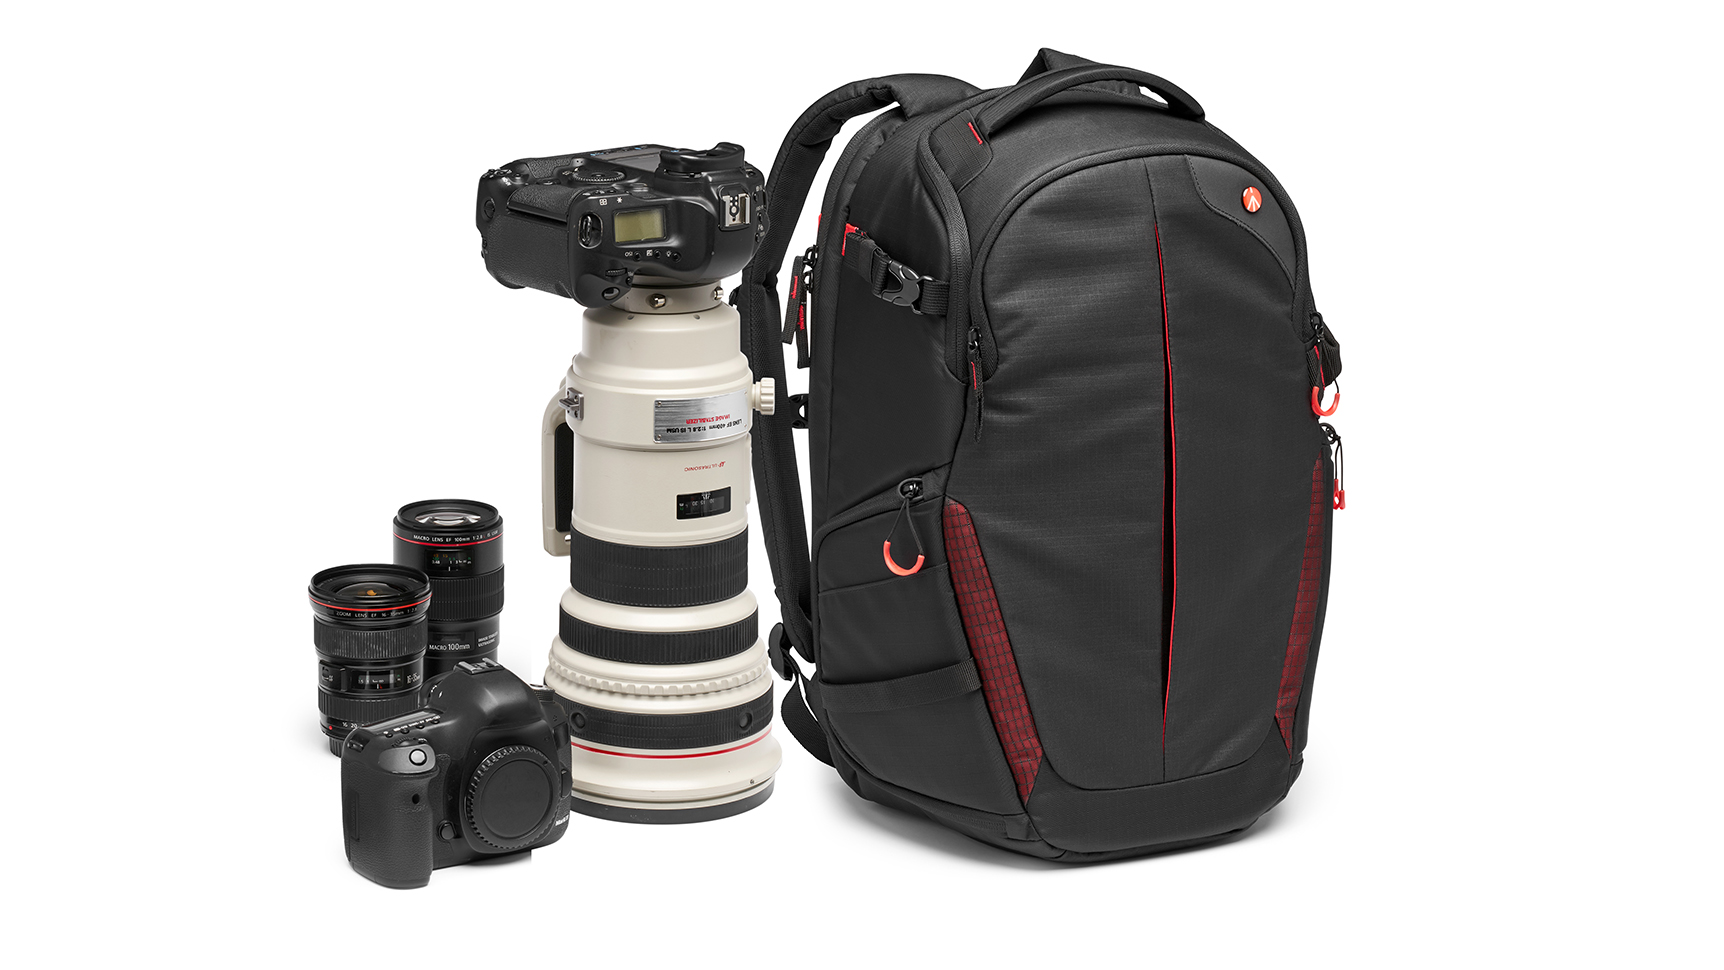 Stylish and secure: Manfrotto unveils a pair of Pro Light RedBee backpacks